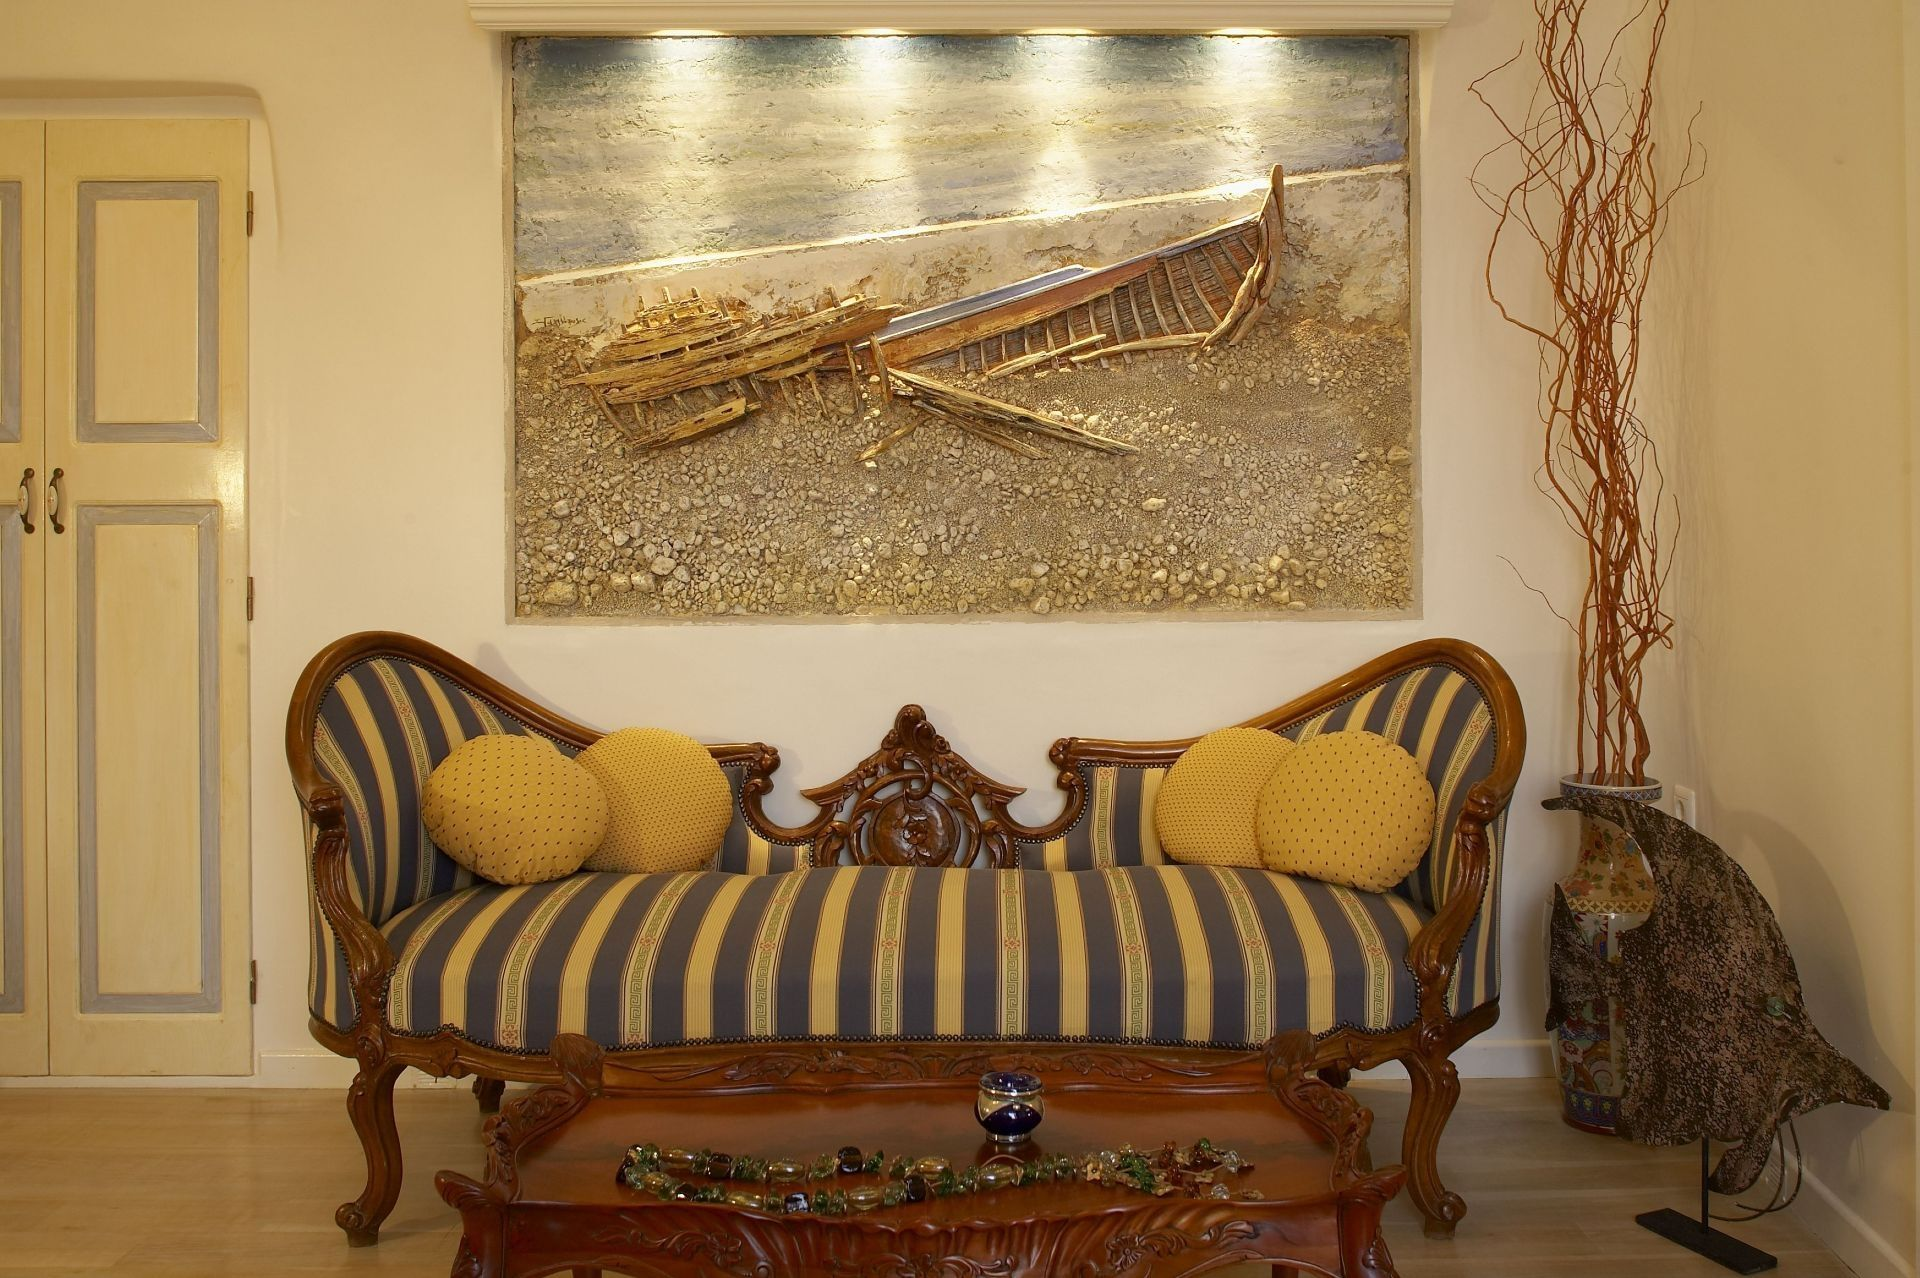 Antique furnishing and artistic details, such as original paintings characterize most of Art Maisons suites!